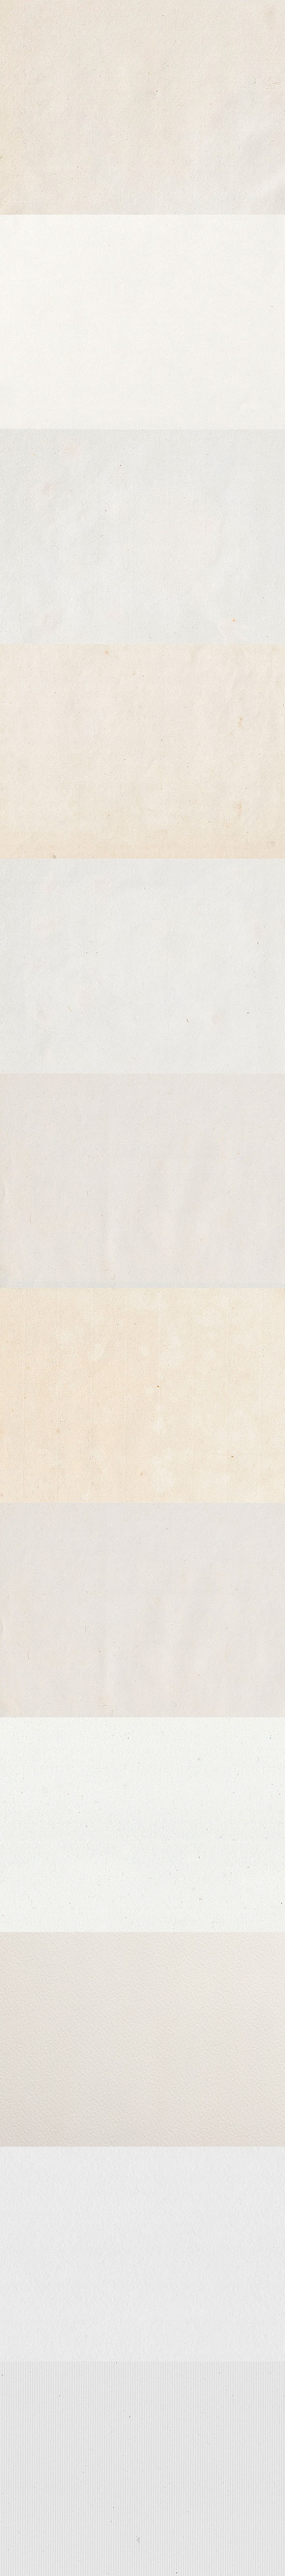 Free Download 12 Paper Textures